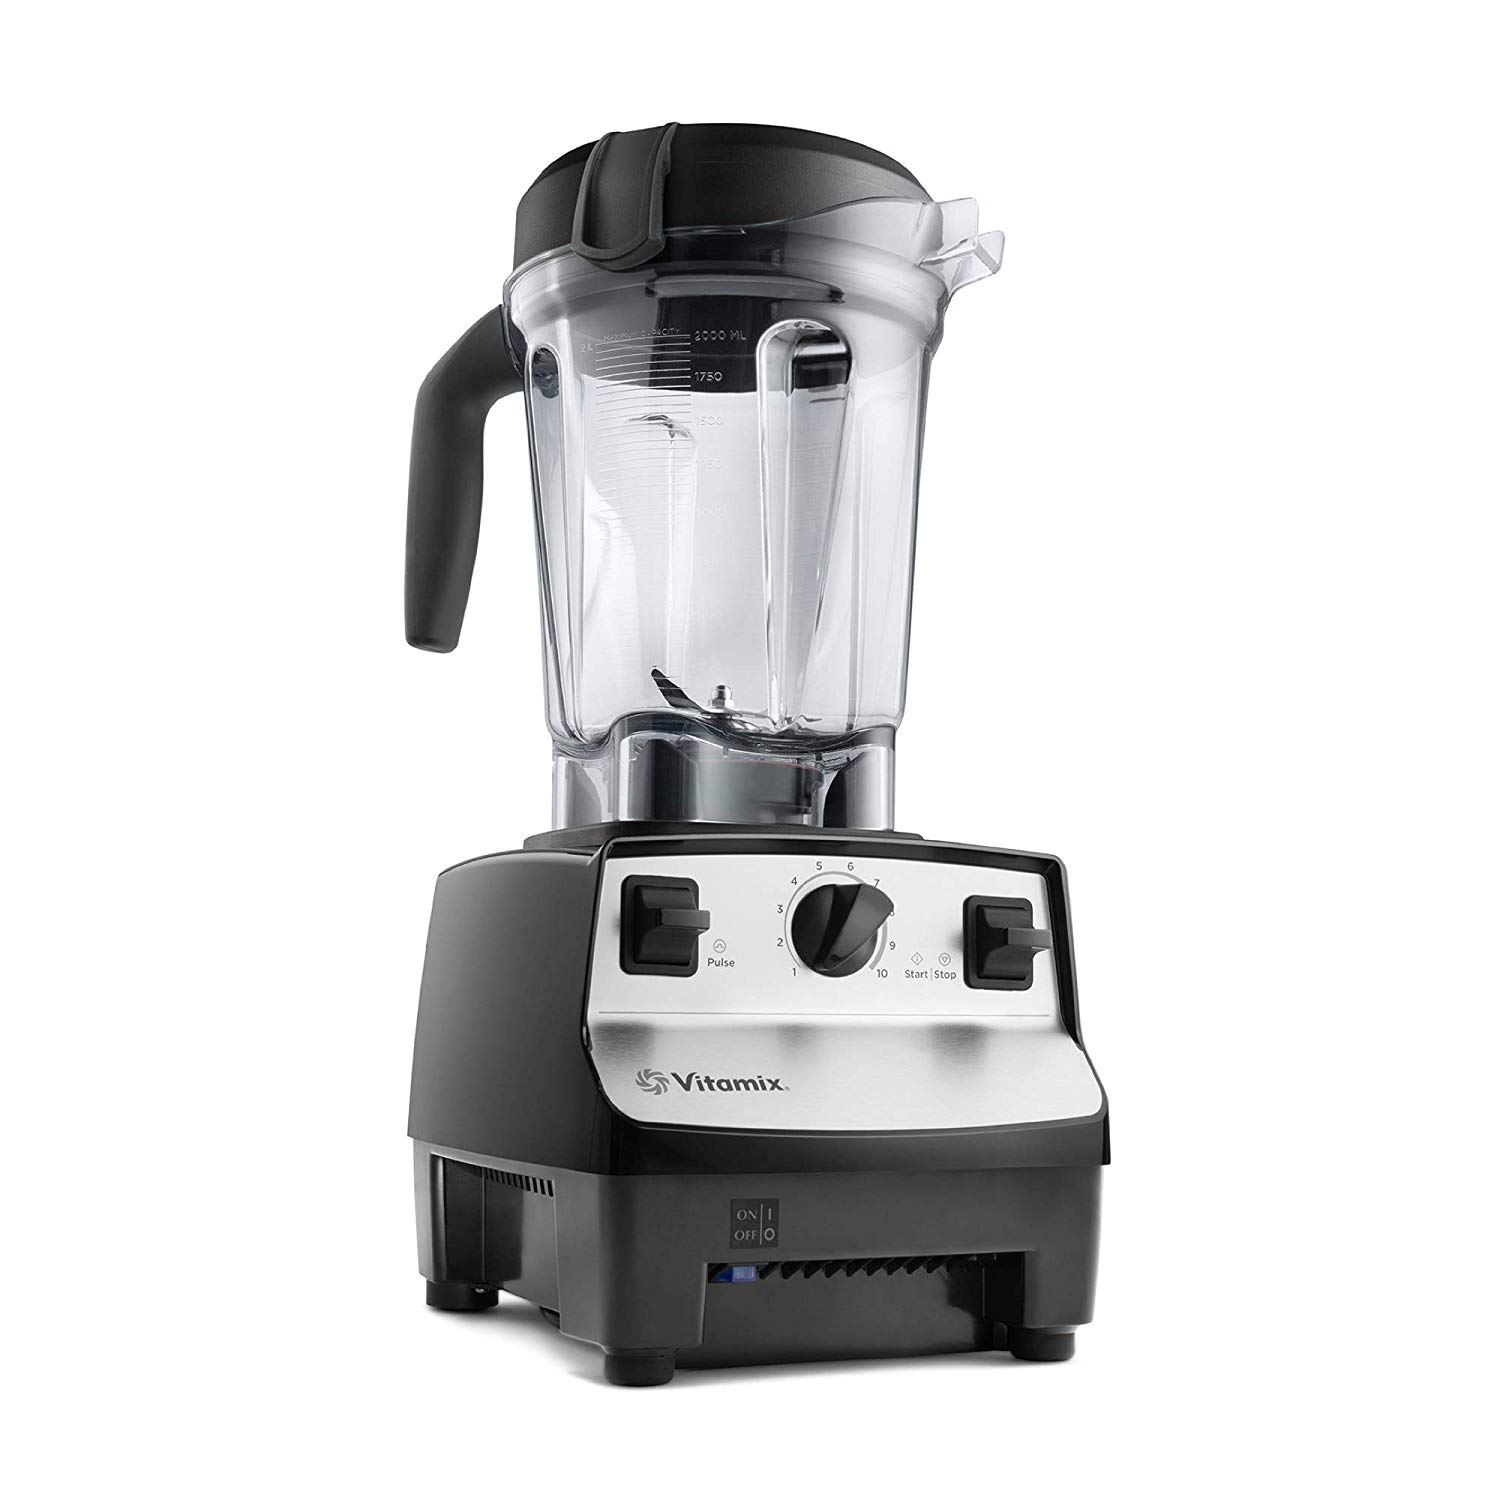 Best Blender to buy. Vitamix 5300 Blender Professional Grade